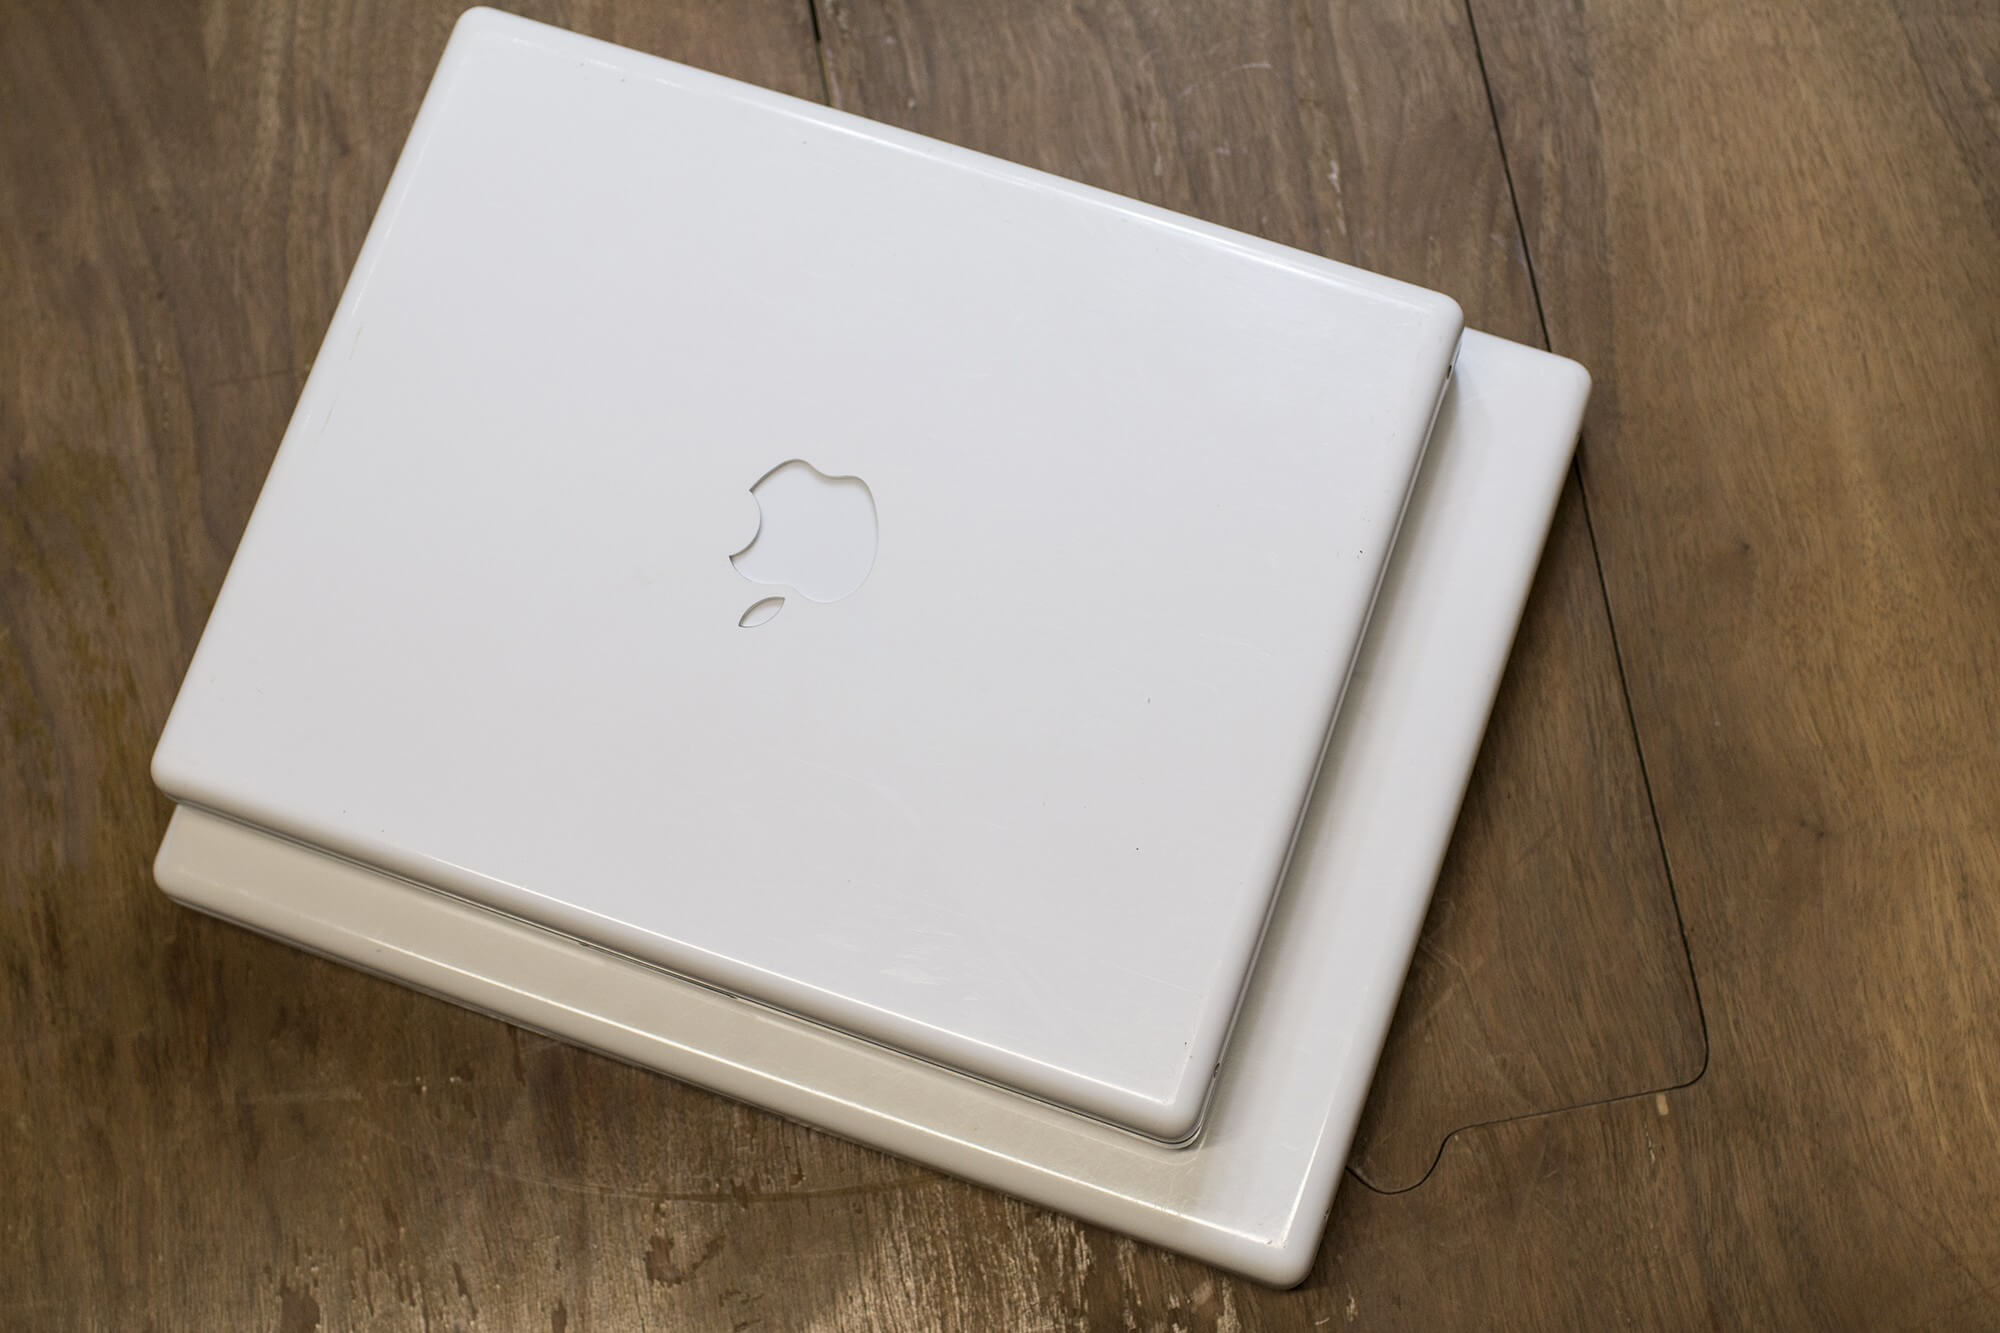 iBook G3, весь в белом… — The IT-Files